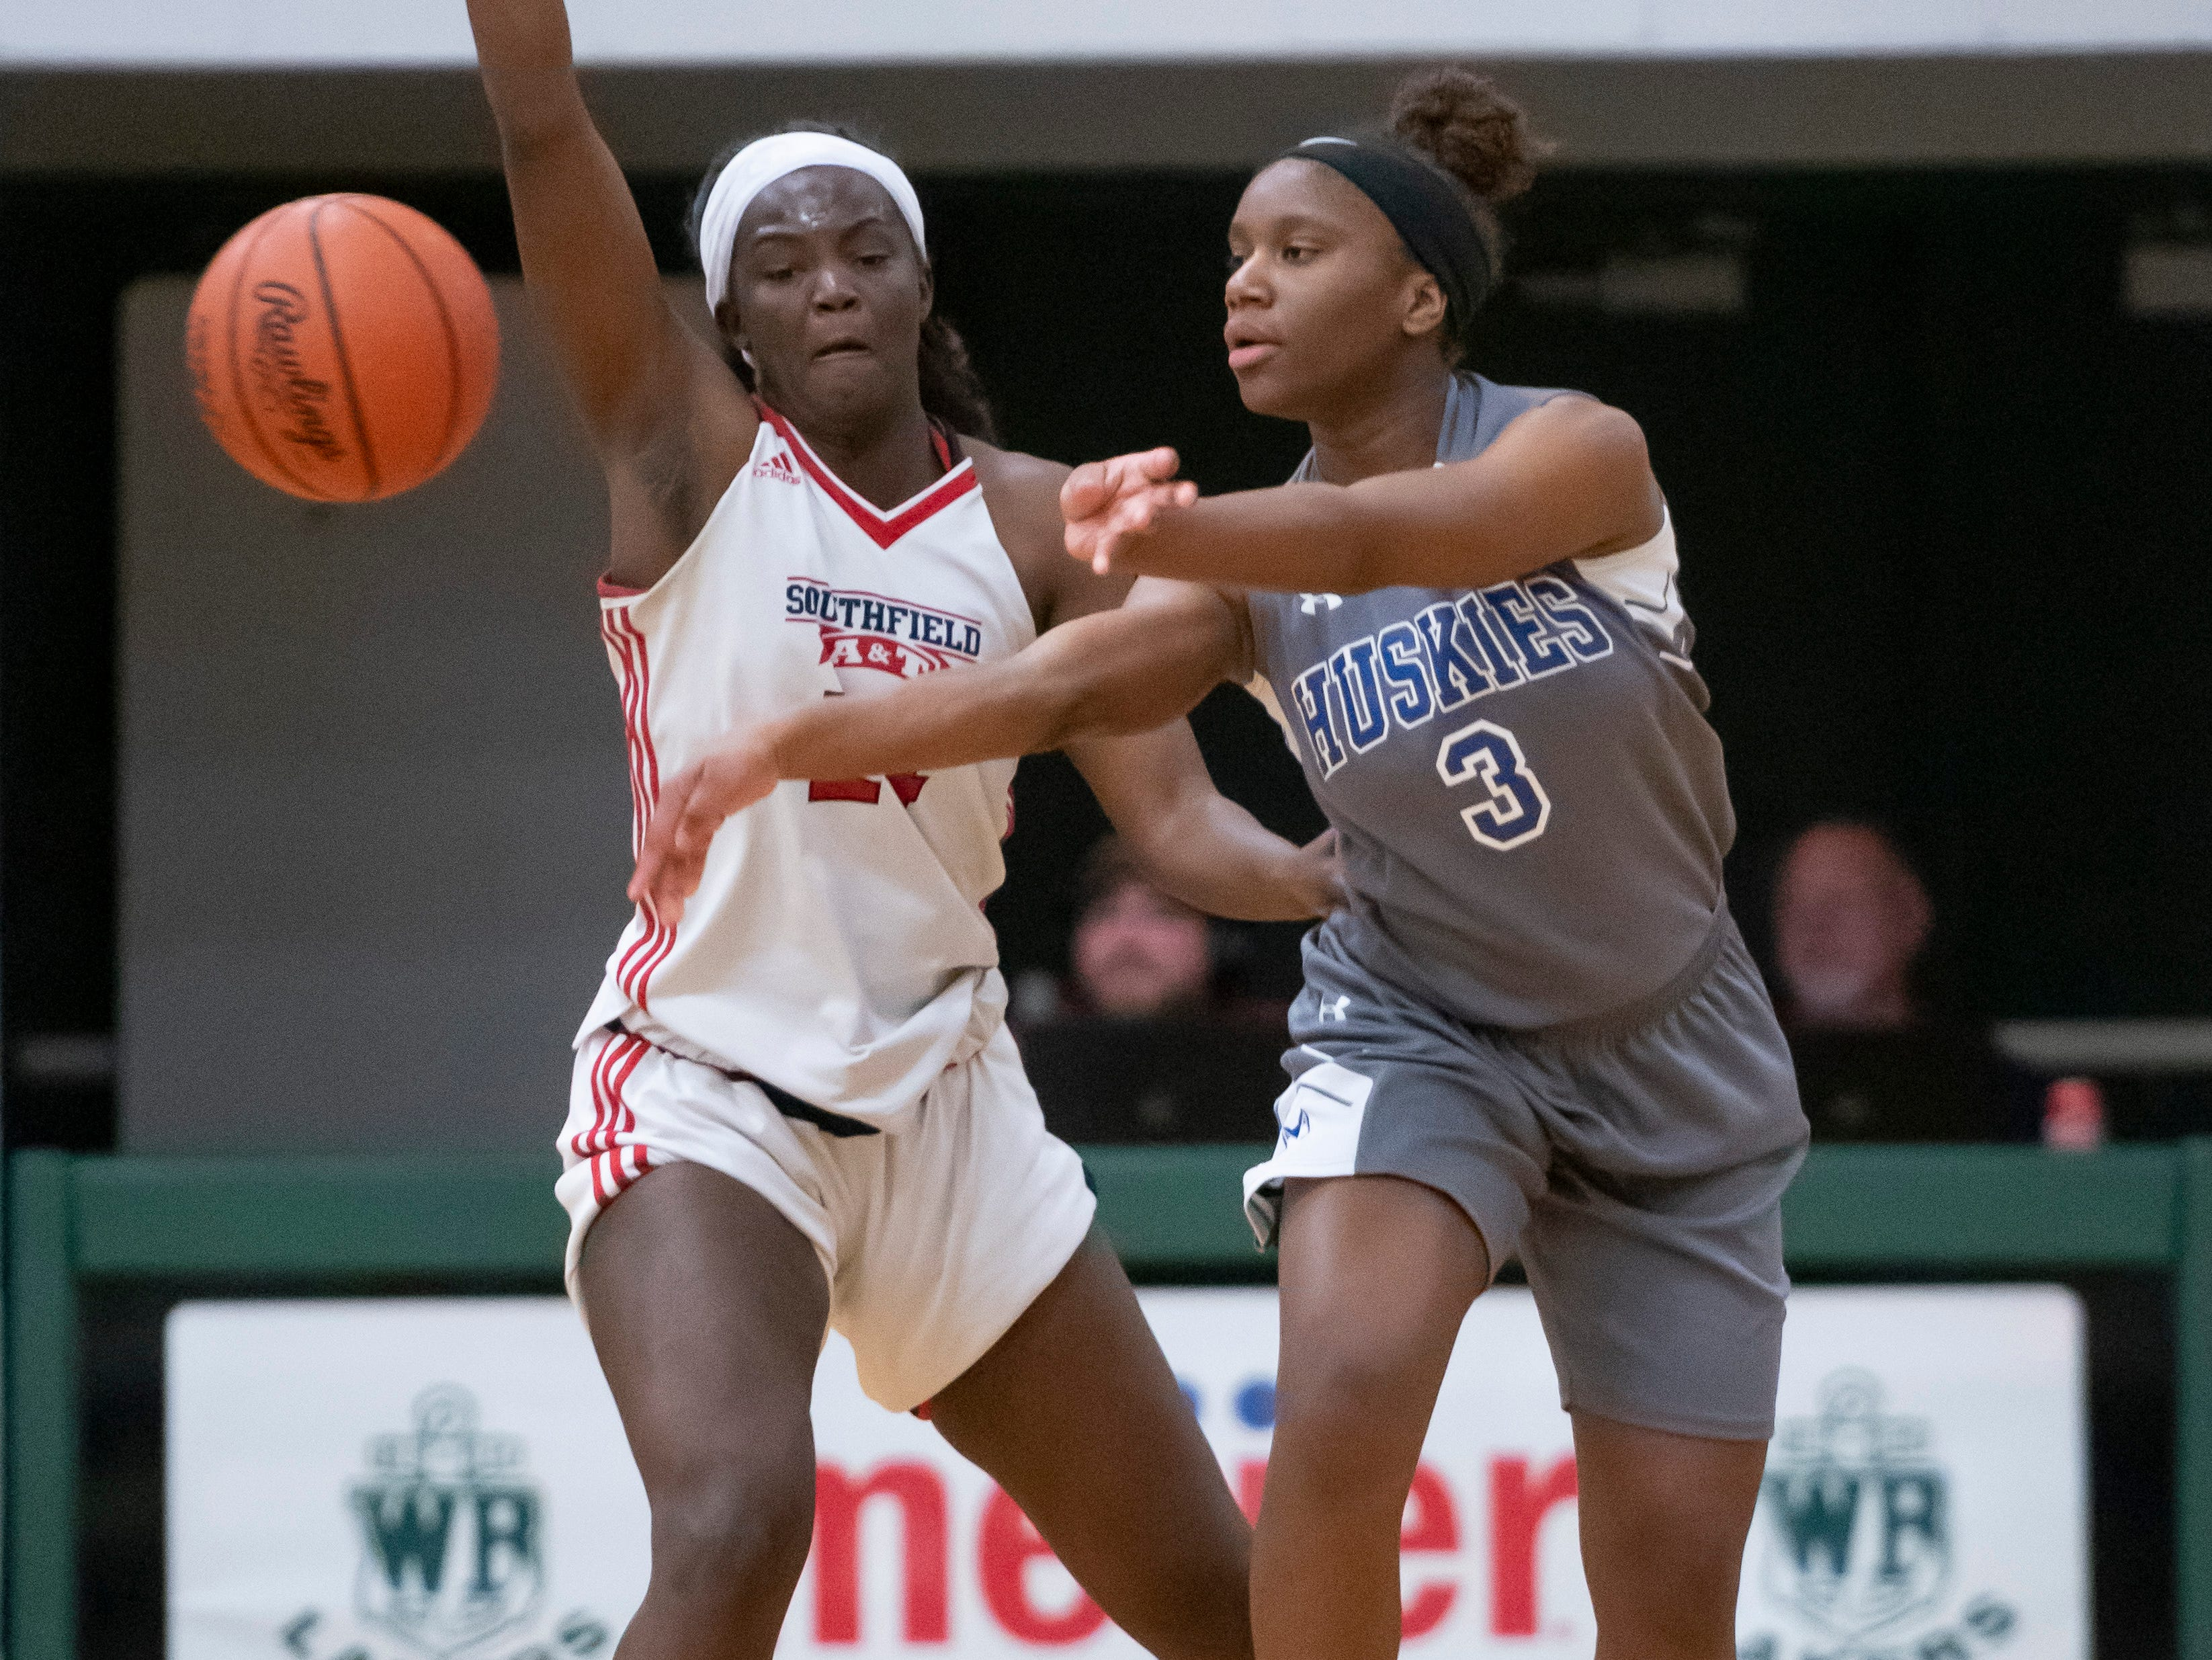 Lakeview guard Ri'Shynah Lewis, right, passes the ball away from Southfield A&T forward Alexis Johnson in the first half.